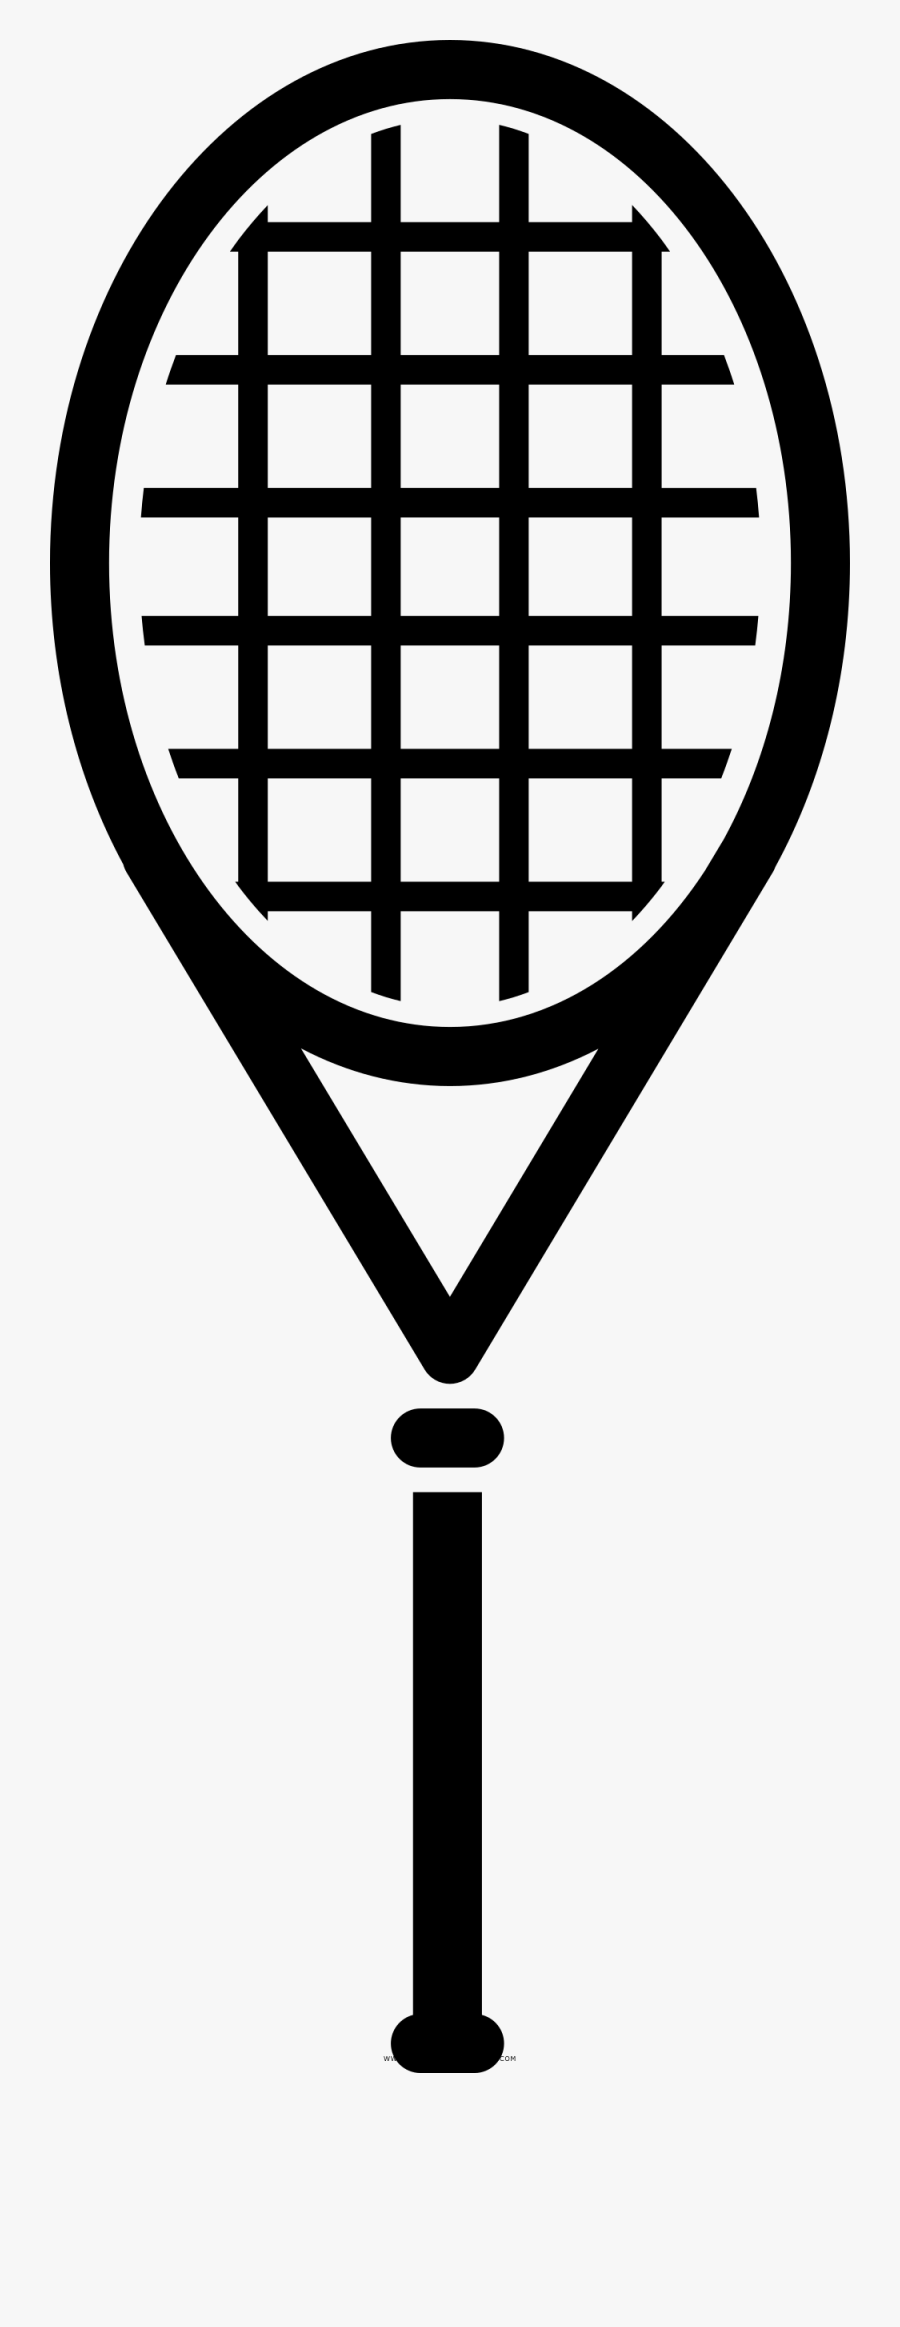 Tennis Racquet Coloring Page - Black And White Tennis Racket Template, Transparent Clipart